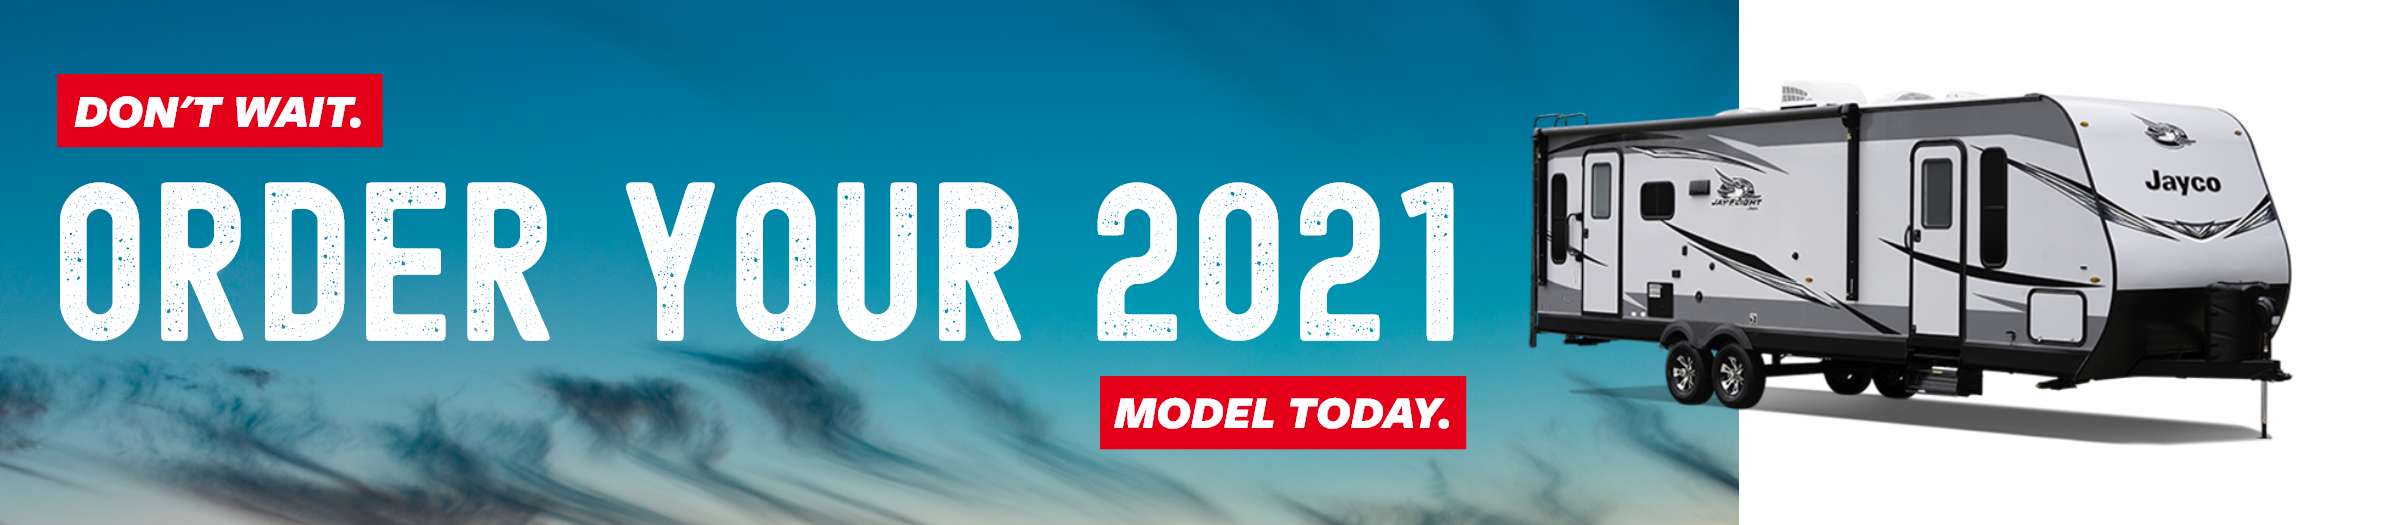 order your 2021